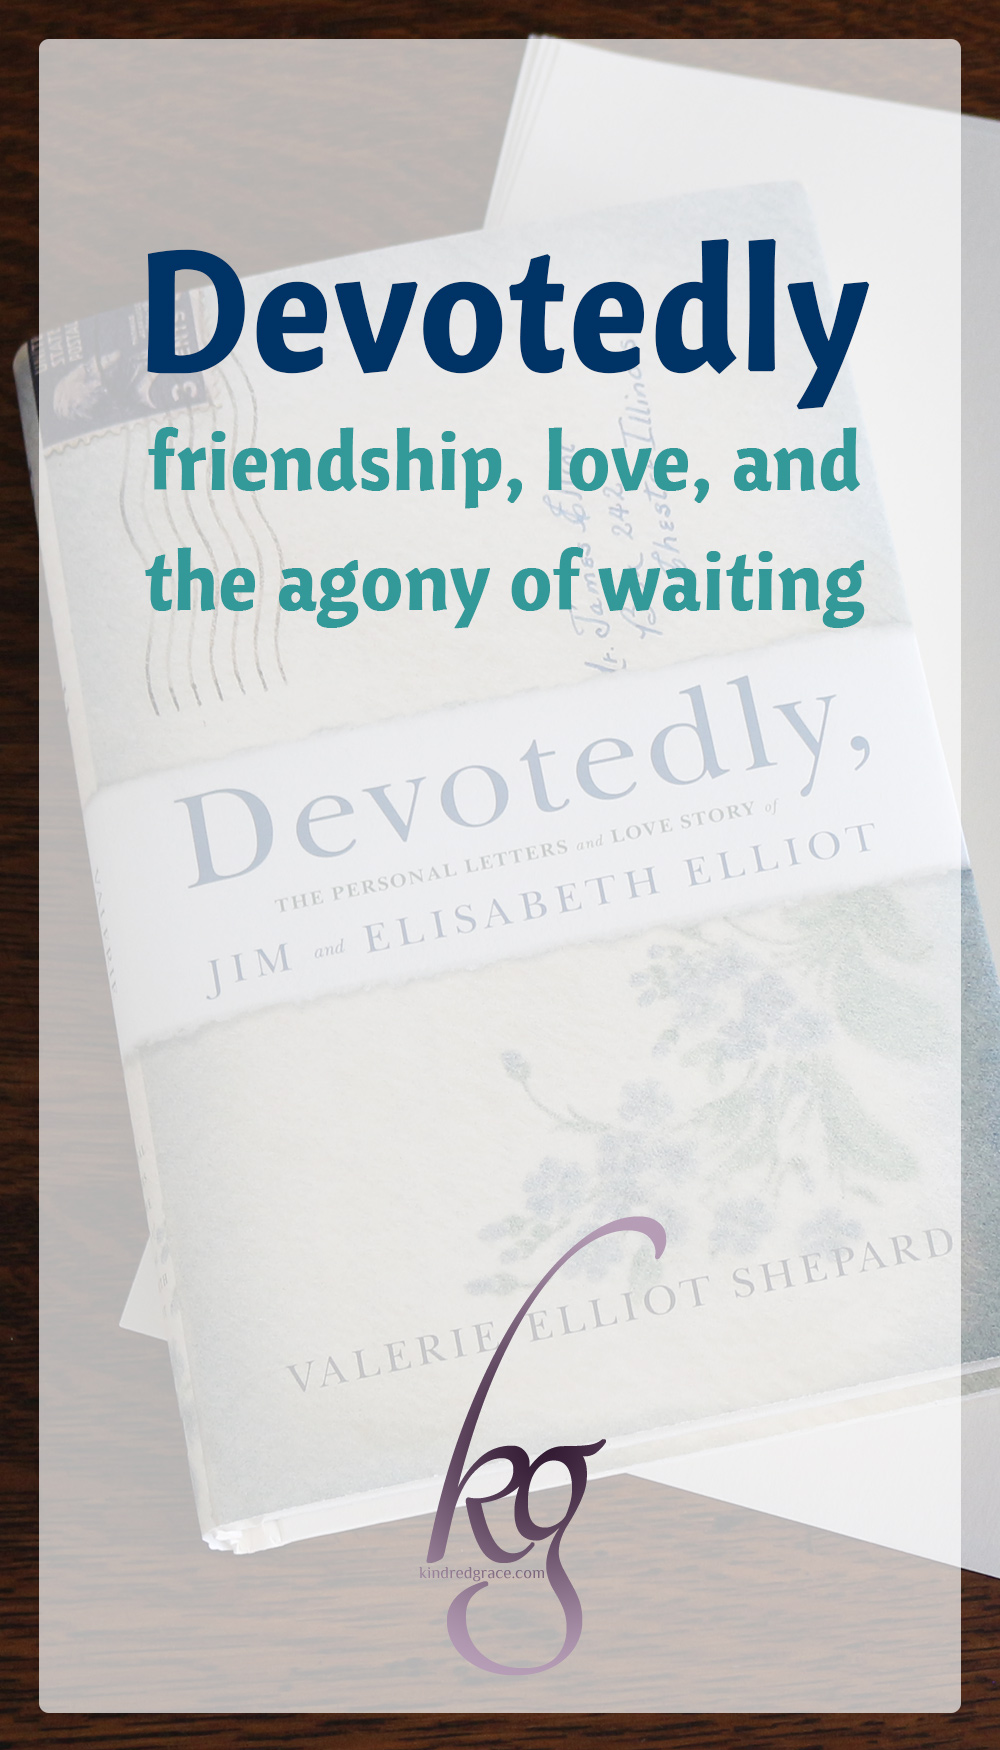 What Devotedly makes so very clear is that Jim and Elisabeth were two very ordinary human beings with passions and sins common to each of us. Two ordinary people who prayed fervently for an unordinary hunger for God. Two people who looked purely to His Word for guidance. Two people who loved each other passionately but loved God more. via @KindredGrace